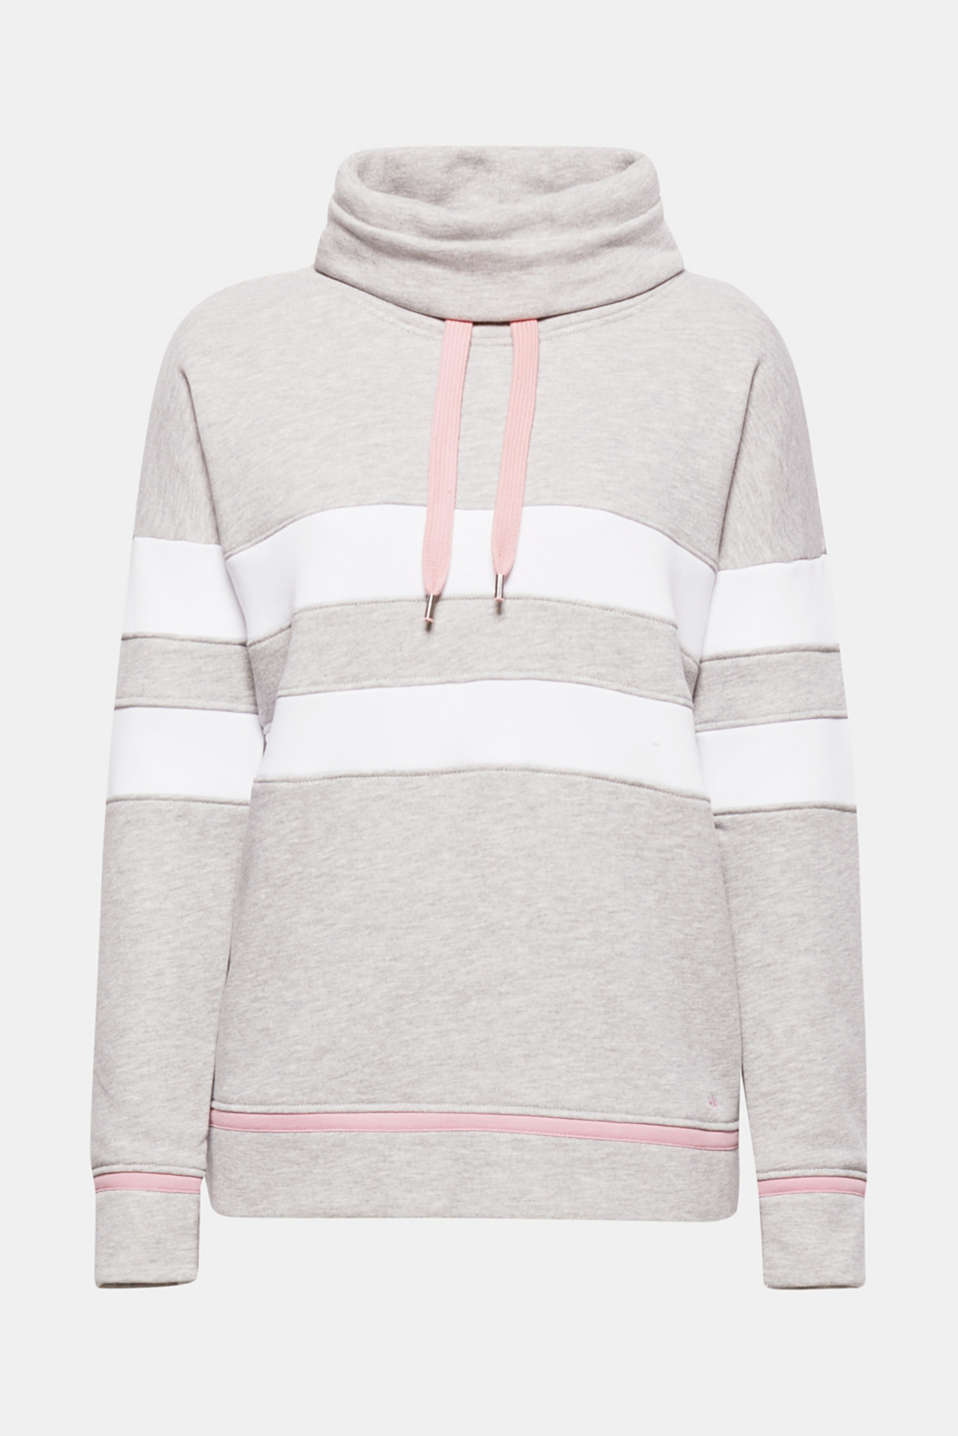 The compact material that is softly brushed on the inside and the colour block look give this sweatshirt a sporty vibe!